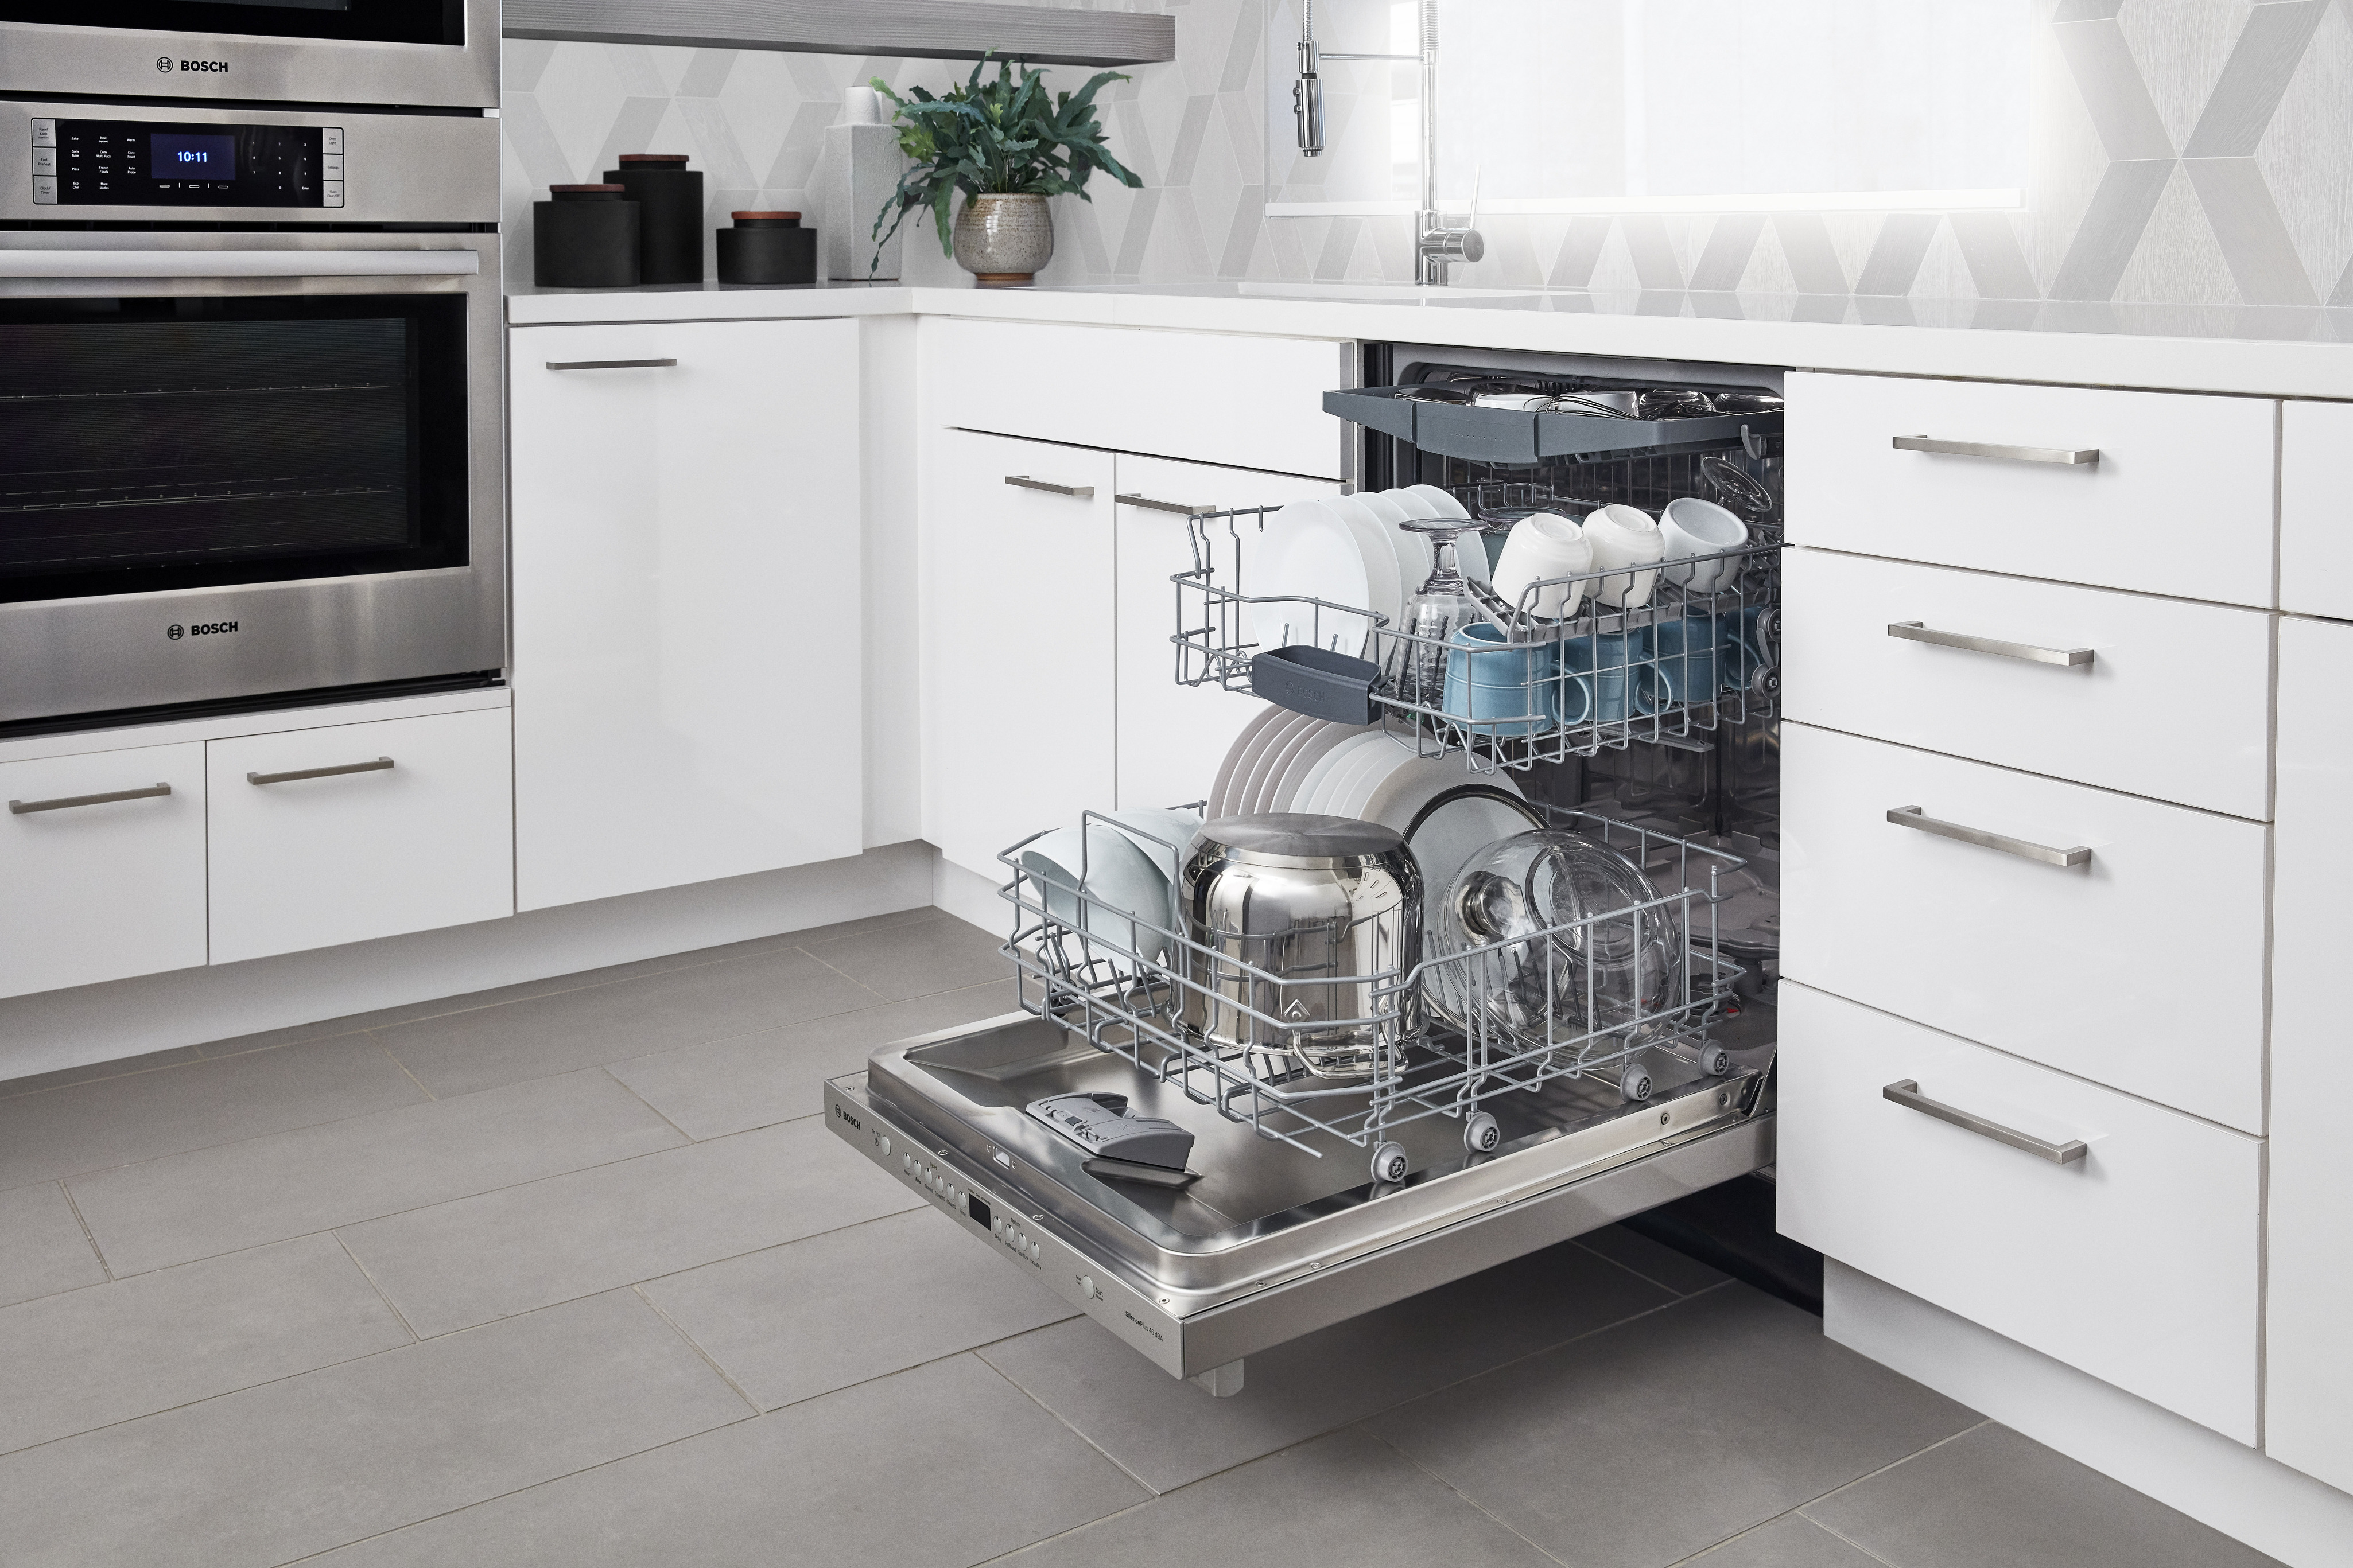 review Bosch diswasher